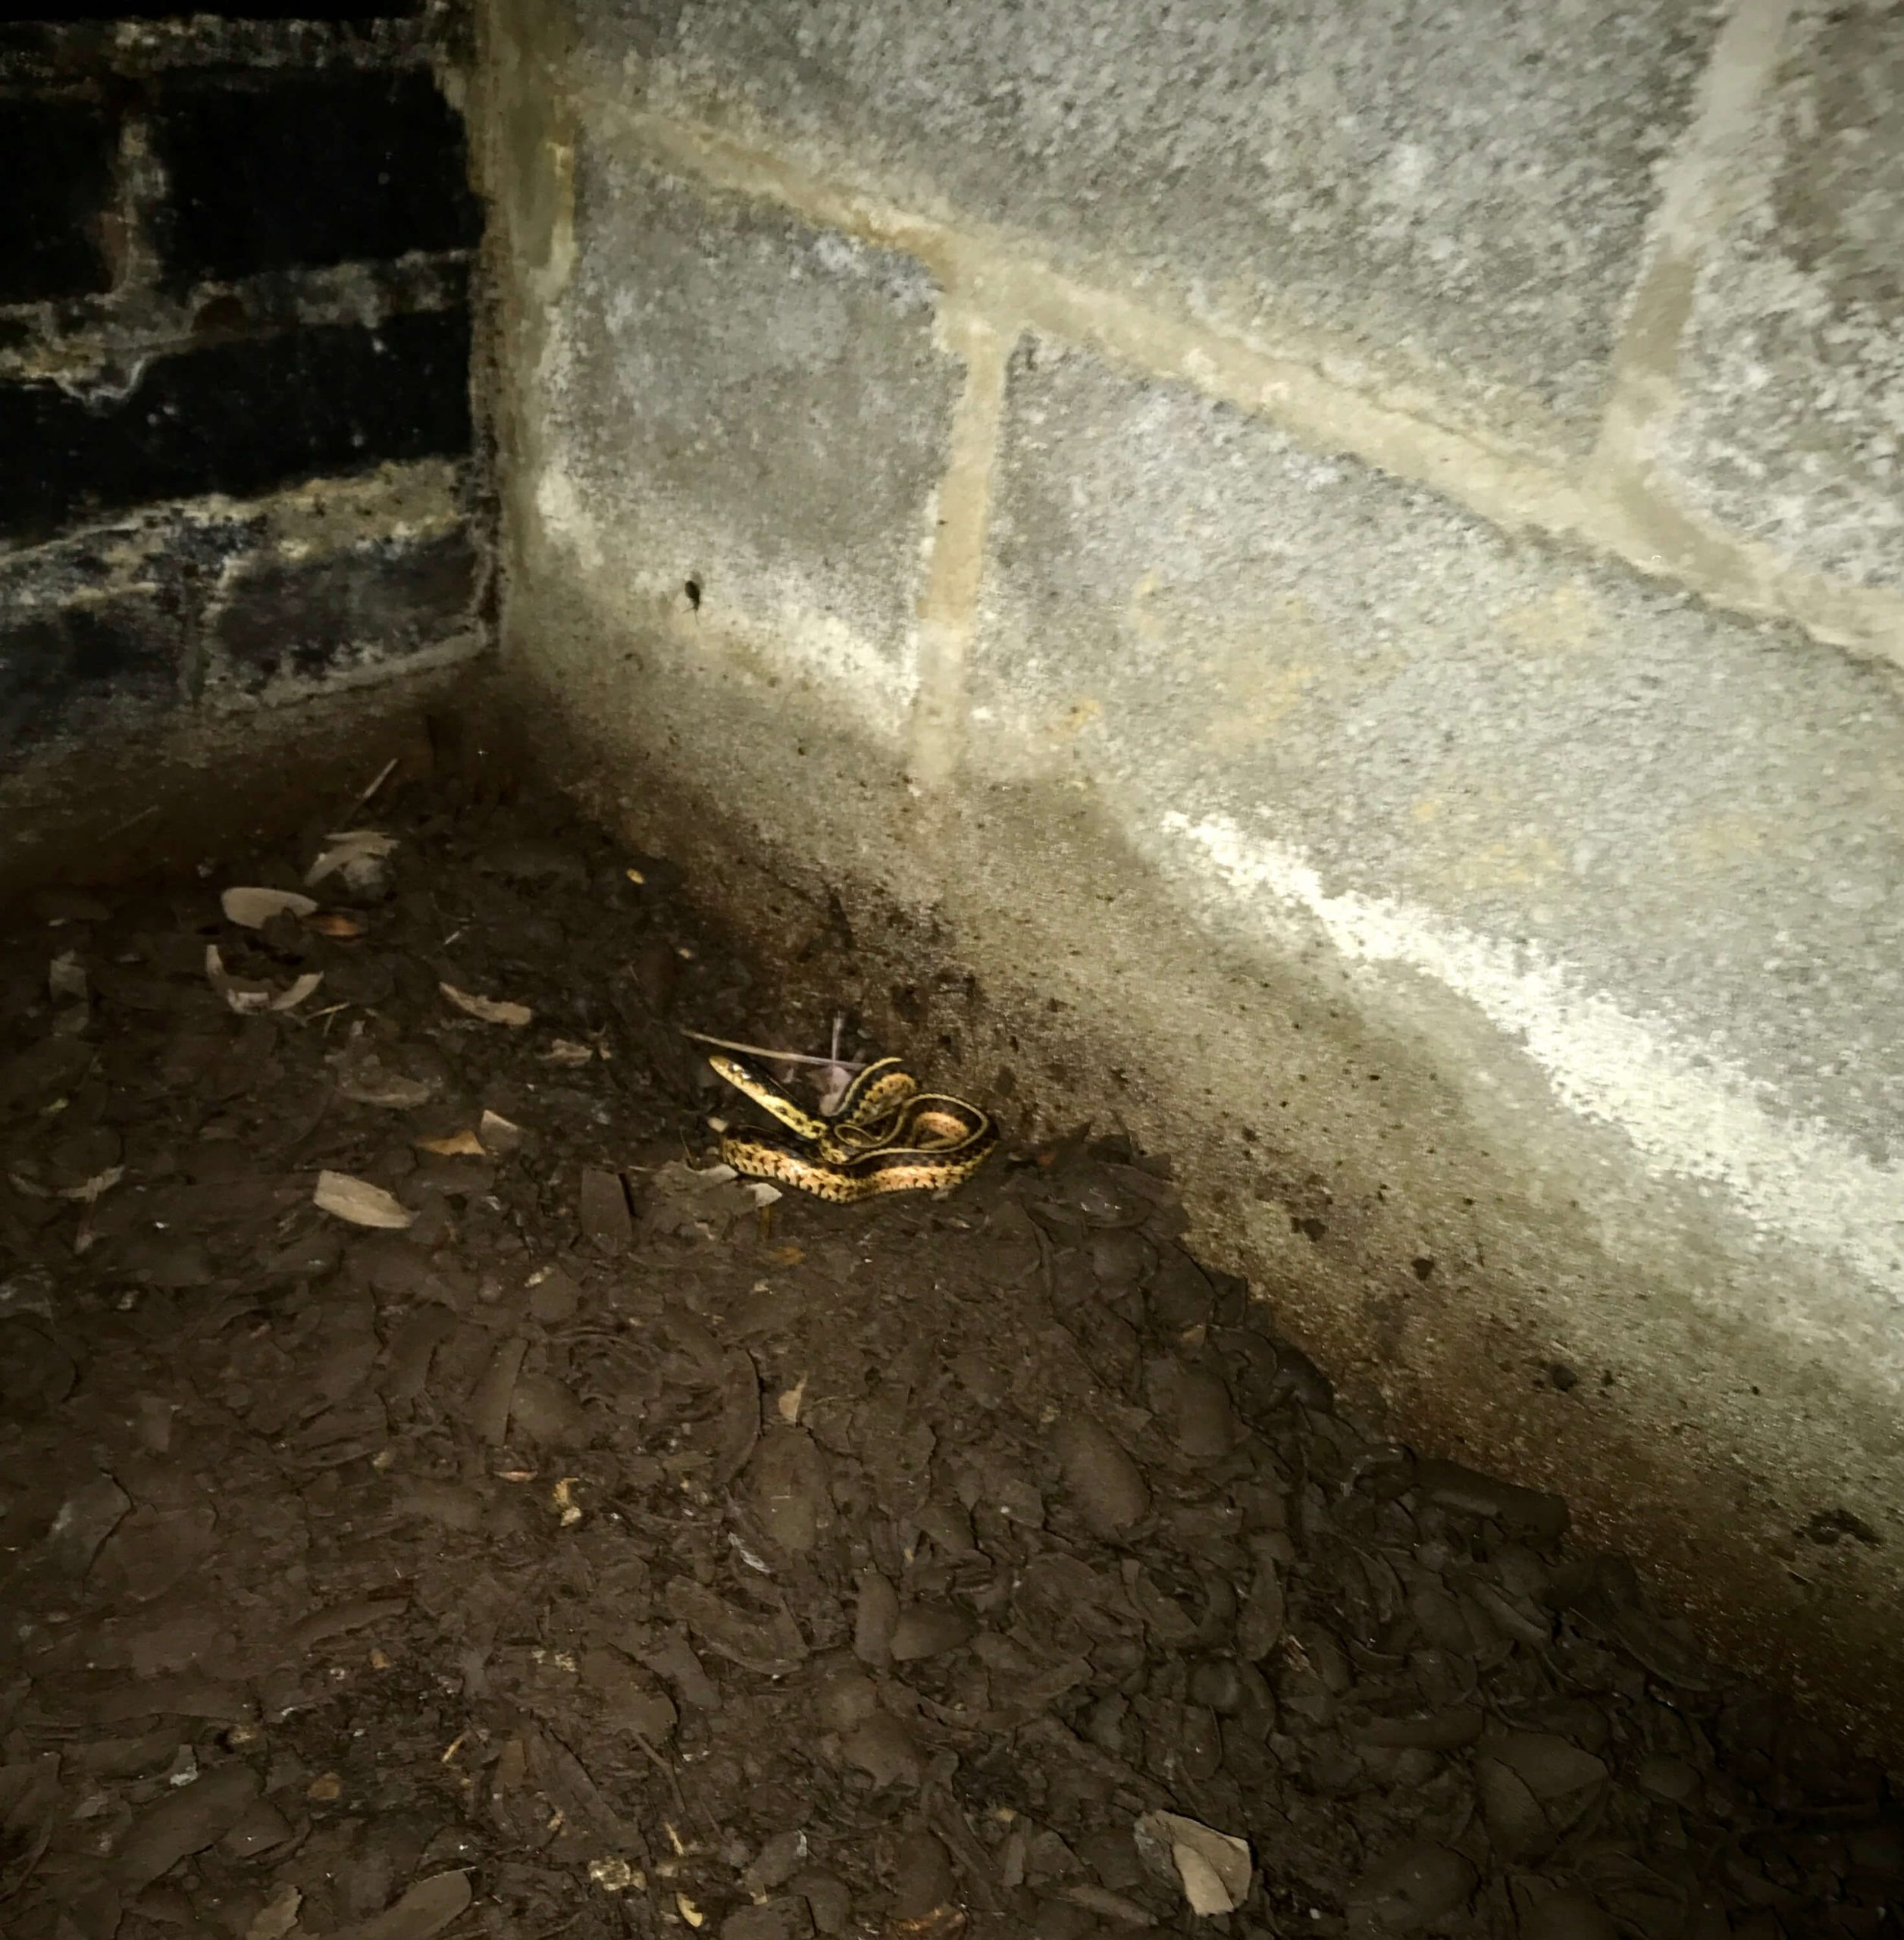 Snake in Crawlspace